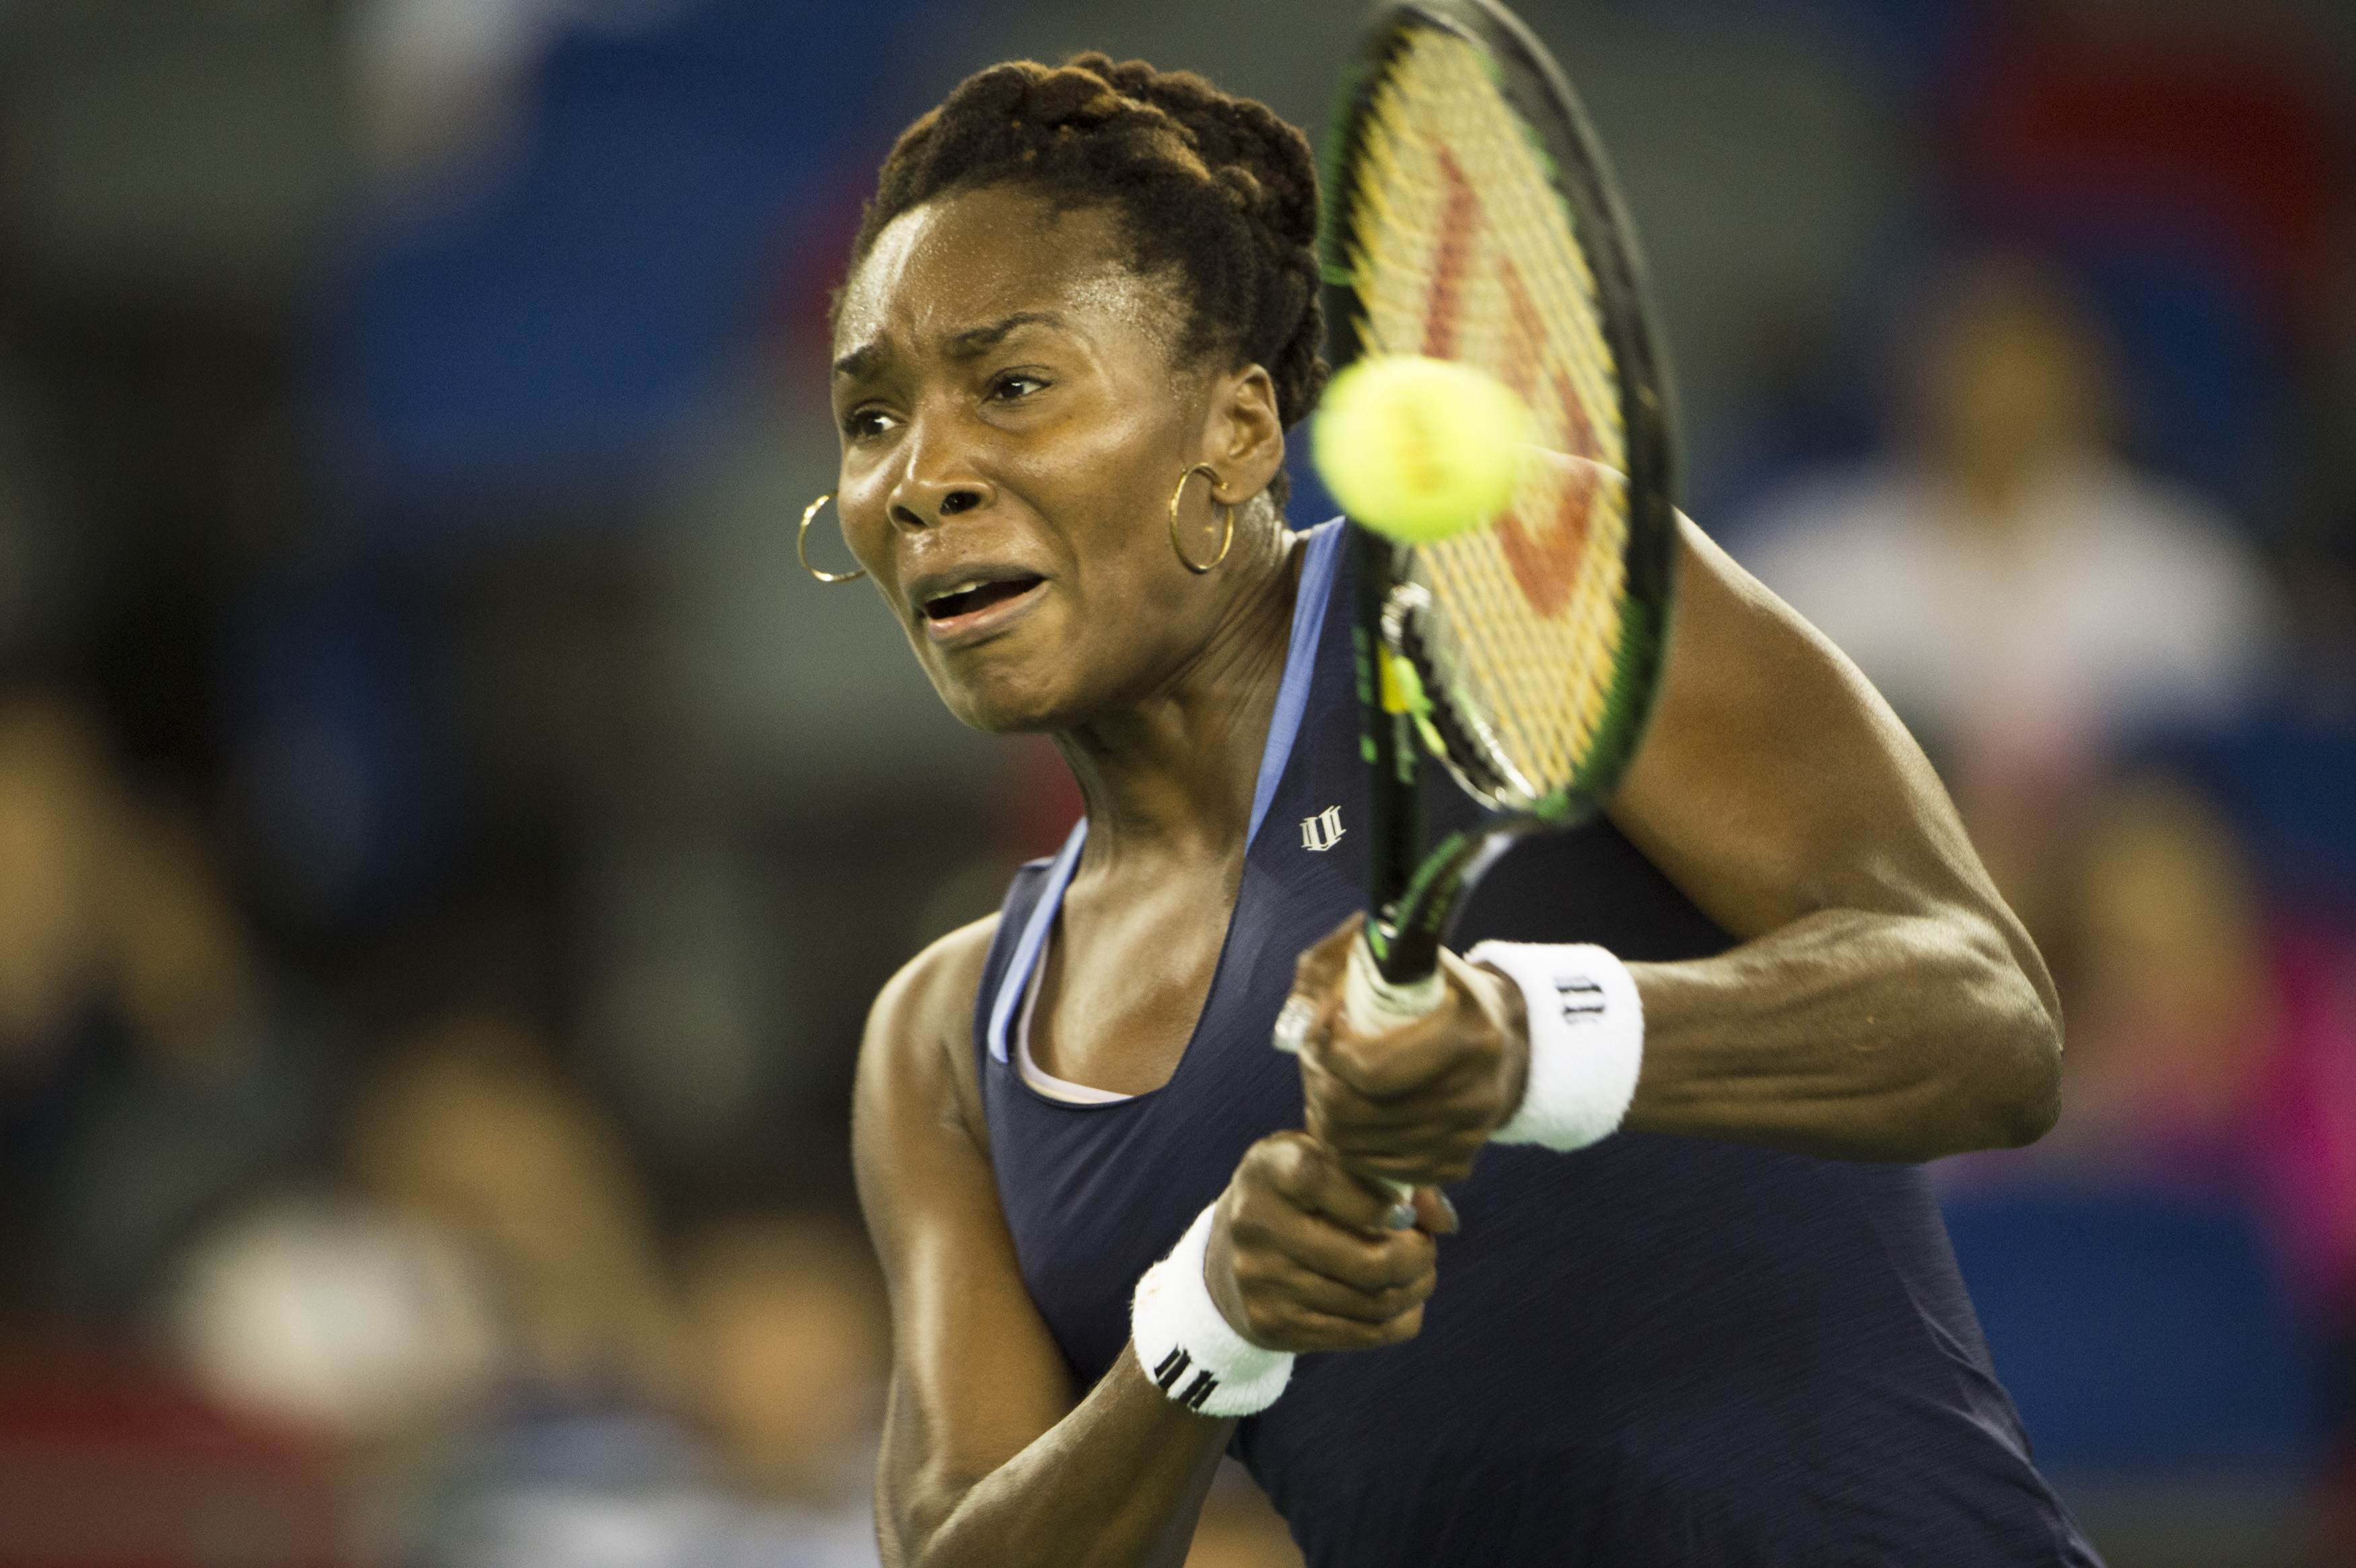 Venus Williams of the US returns a shot to Johanna Konta of Great Britain during the women's singles match on the quarter final of the Wuhan Open tennis tournament in Wuhan, in China's Hubei province on October 1, 2015. AFP PHOTO / FRED DUFOUR